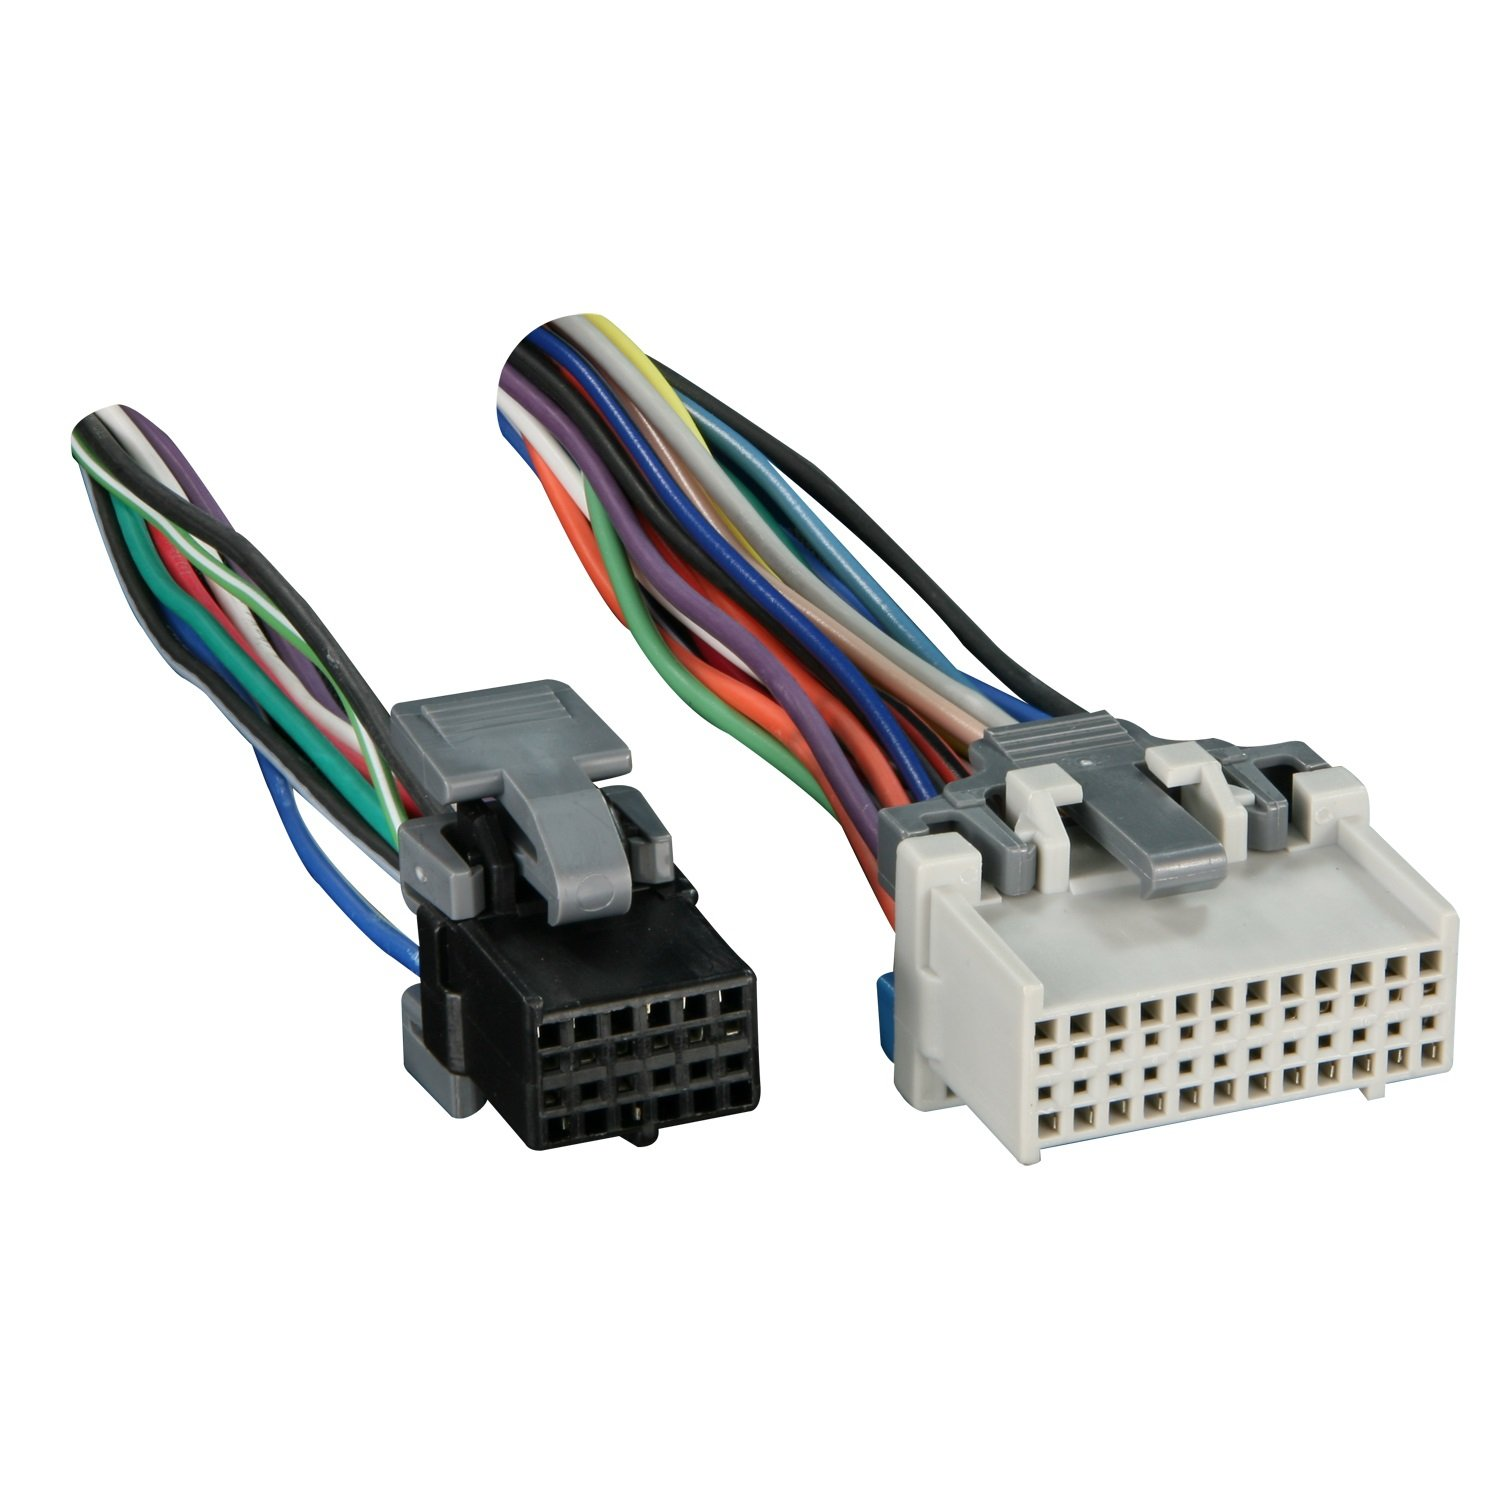 Amazon.com: Metra TurboWires 71-2003-1 Wiring Harness: Car Electronics